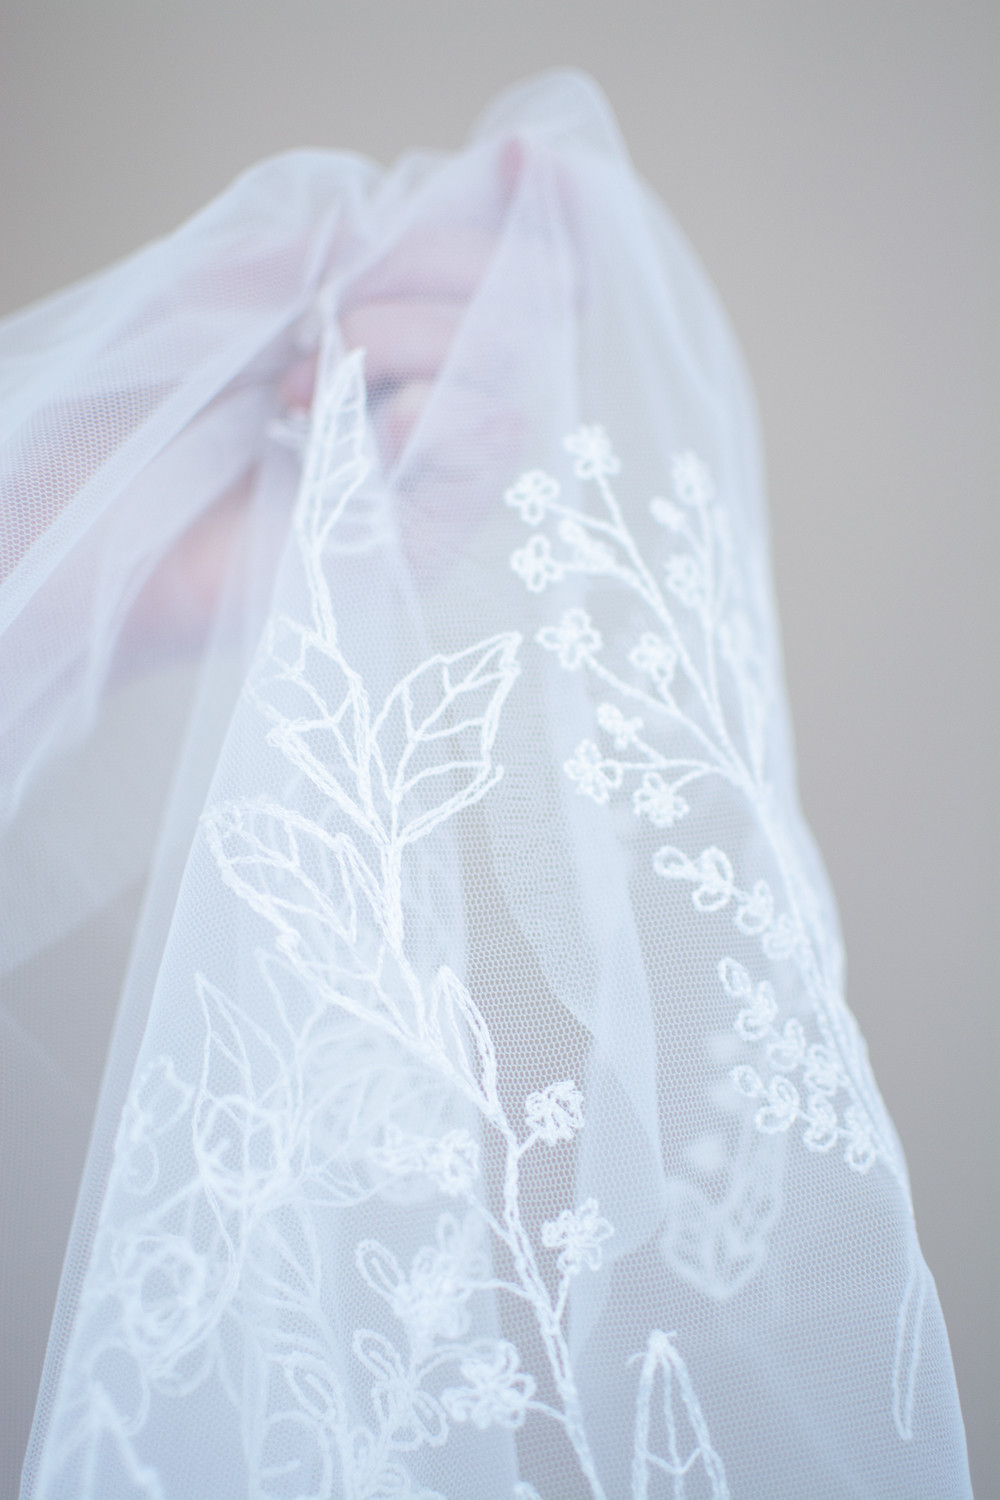 beautiful bridal veil: a wildflower meadow embroidered on a bridal veil